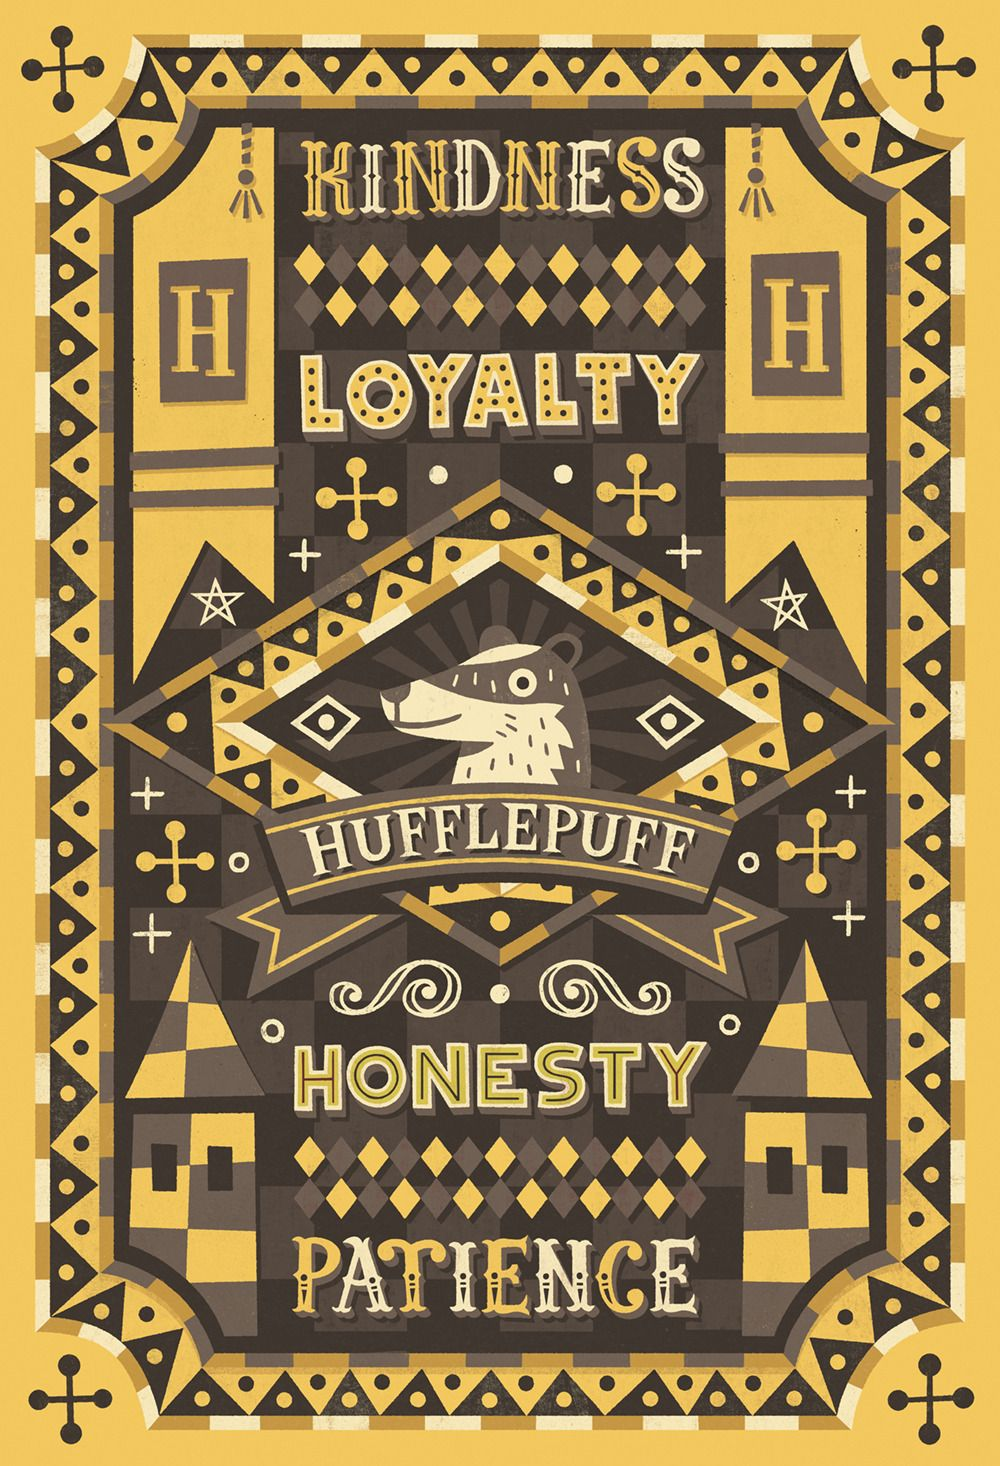 Hufflepuff Second Hogwarts House For Bcn Pottercon Finished Ravenclaw Coming Soon Harry Potter Wallpaper Harry Potter Drawings Harry Potter Art